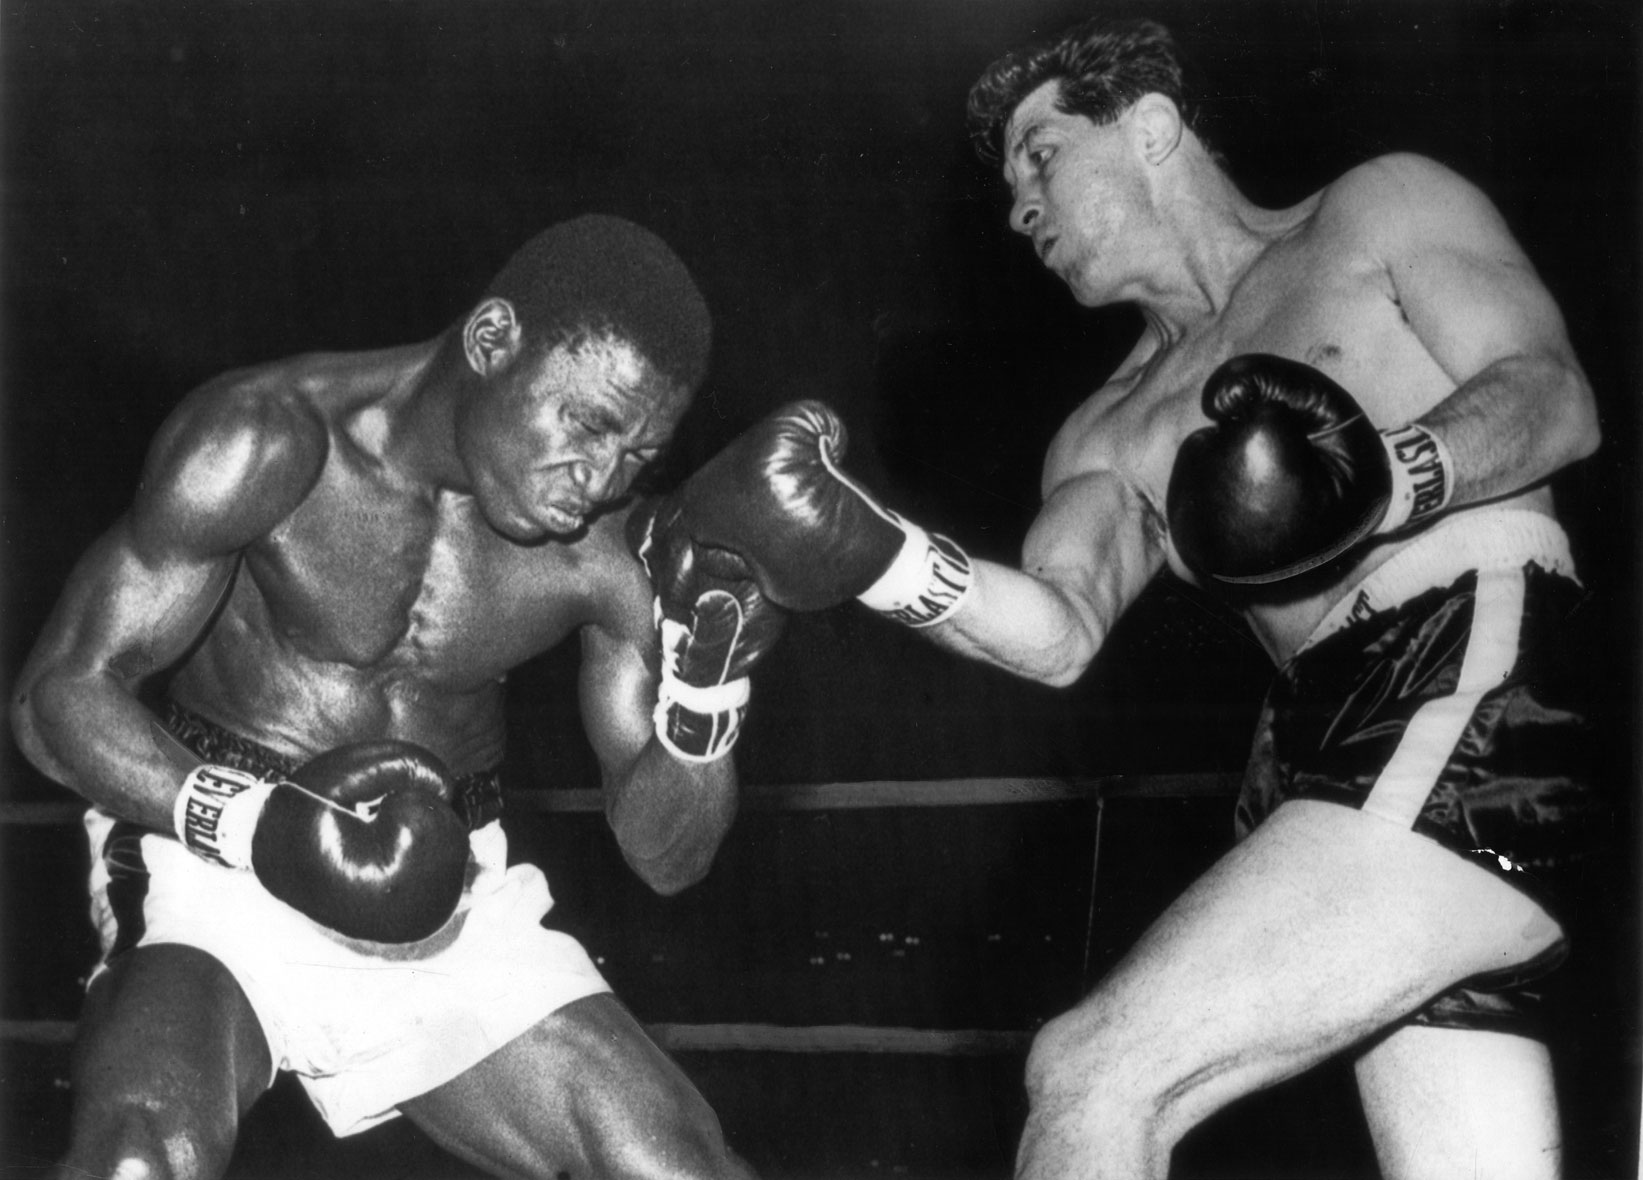 Philly middleweight Joey Giardello (right) delivers a right hook to Dick Tiger during a title fight in Atlantic City on December 7, 1963.Giardello went on to win the middleweight title that night. UPI photo